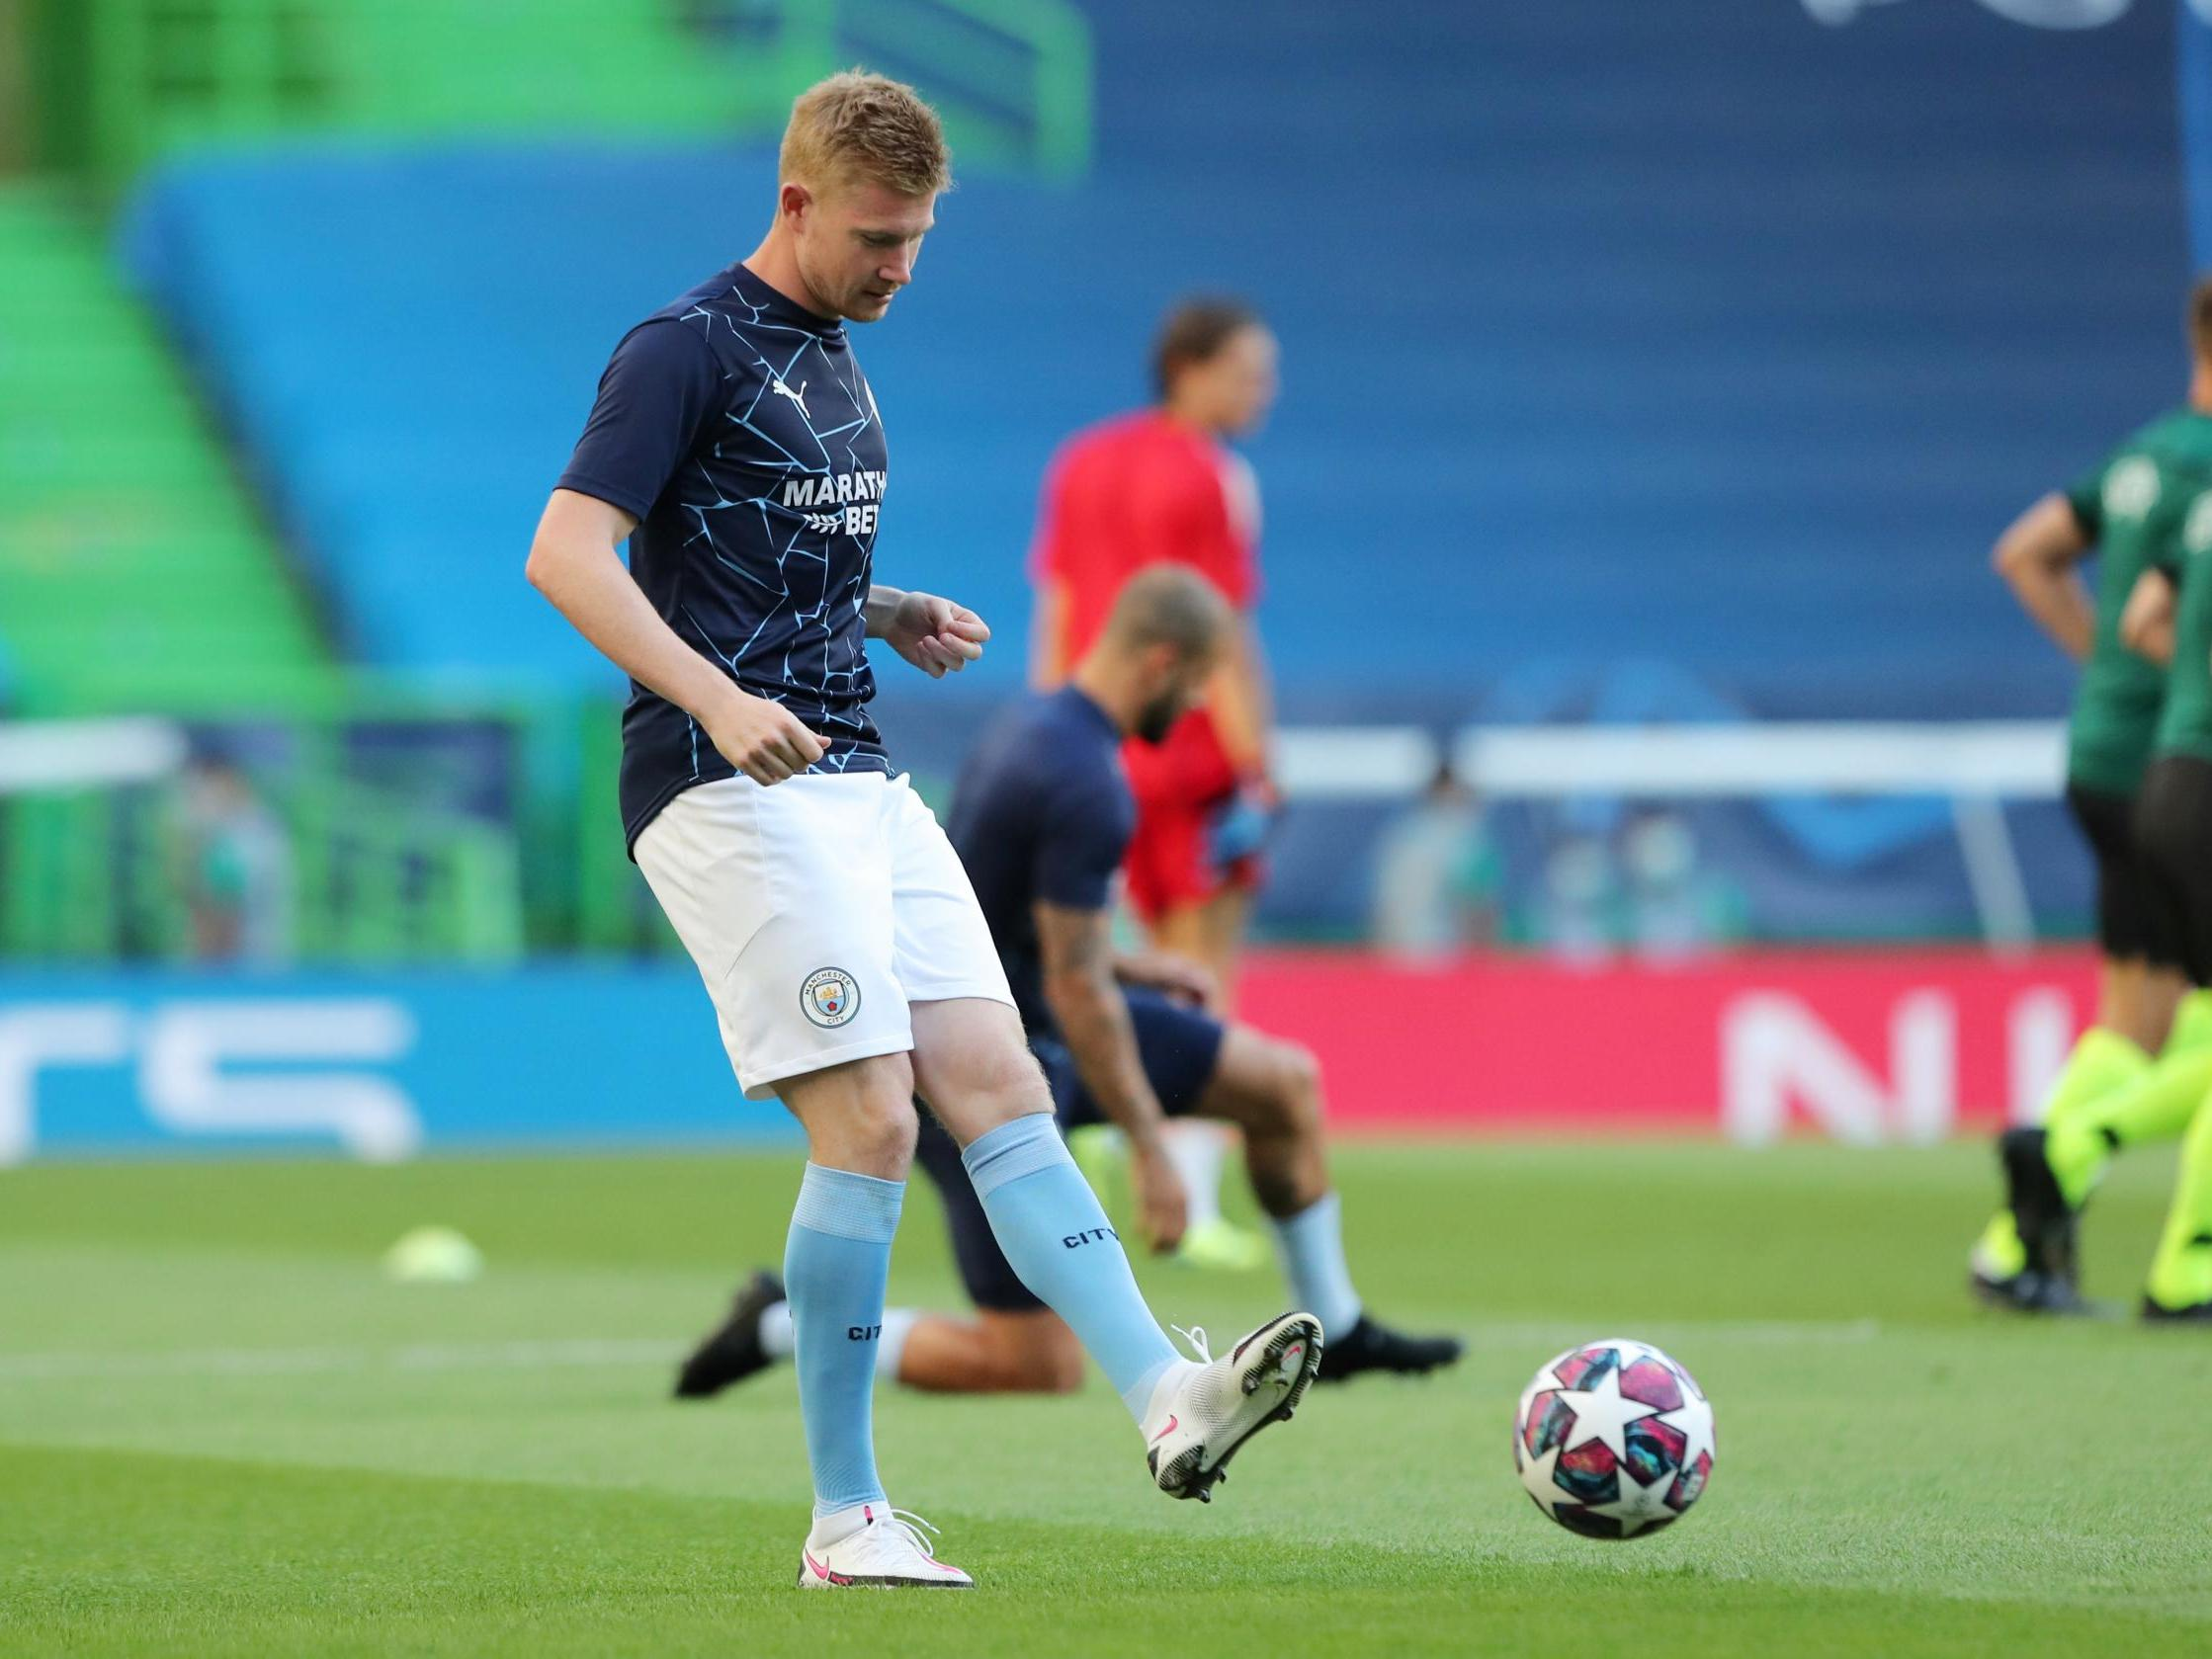 Man City vs Lyon LIVE: Team news, line-ups and more ahead of Champions League fixture tonight